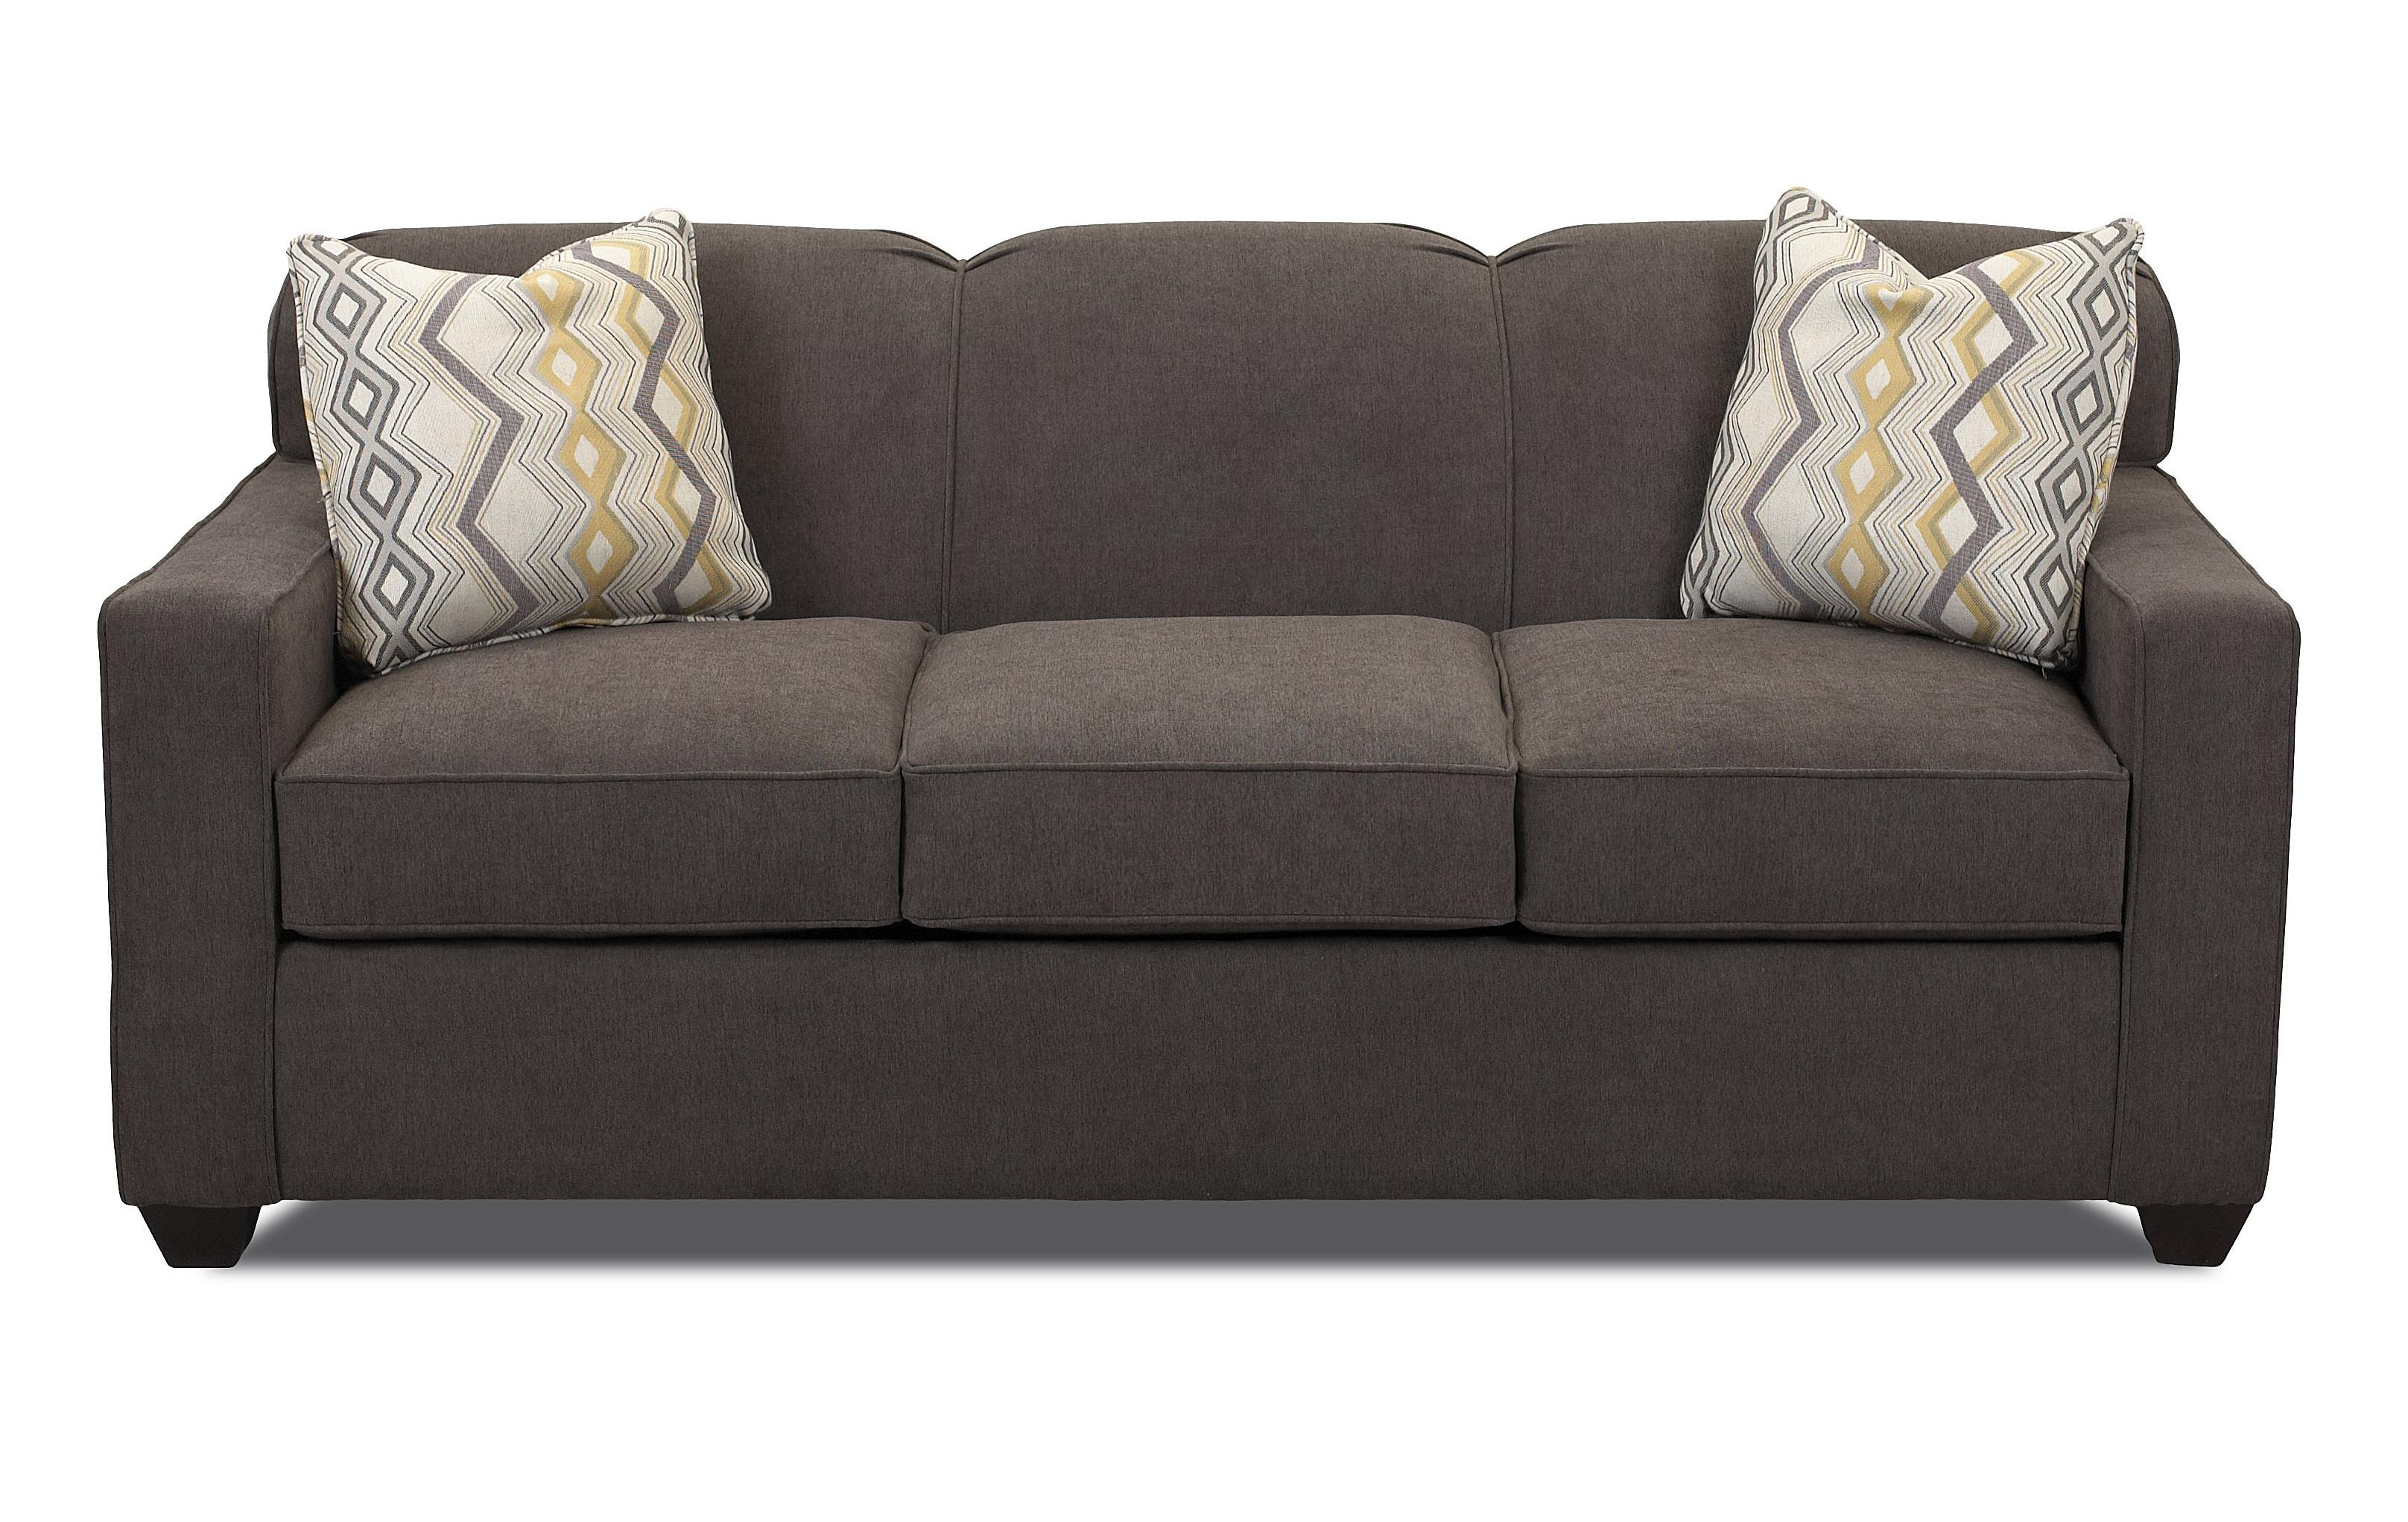 sleeper sofa no arms best makers uk contemporary innerspring queen with tight